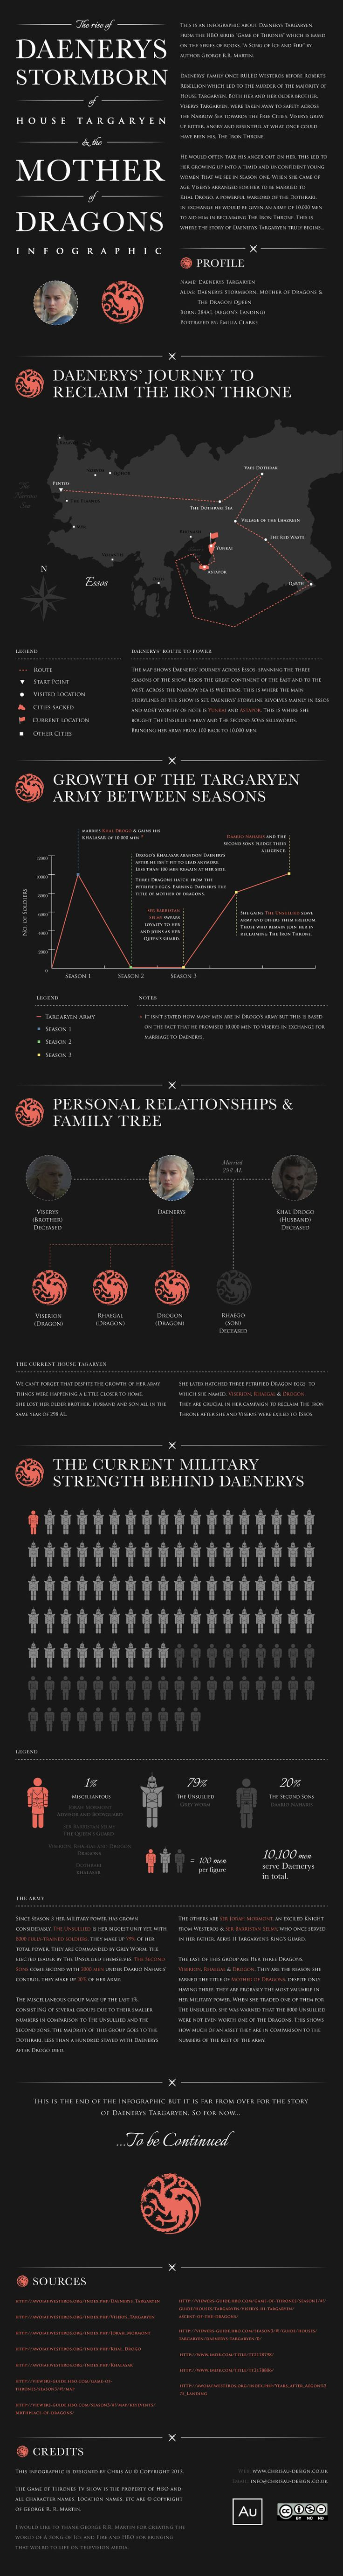 Info about Daenerys Targaryen. Her route, military strength and personal relationships